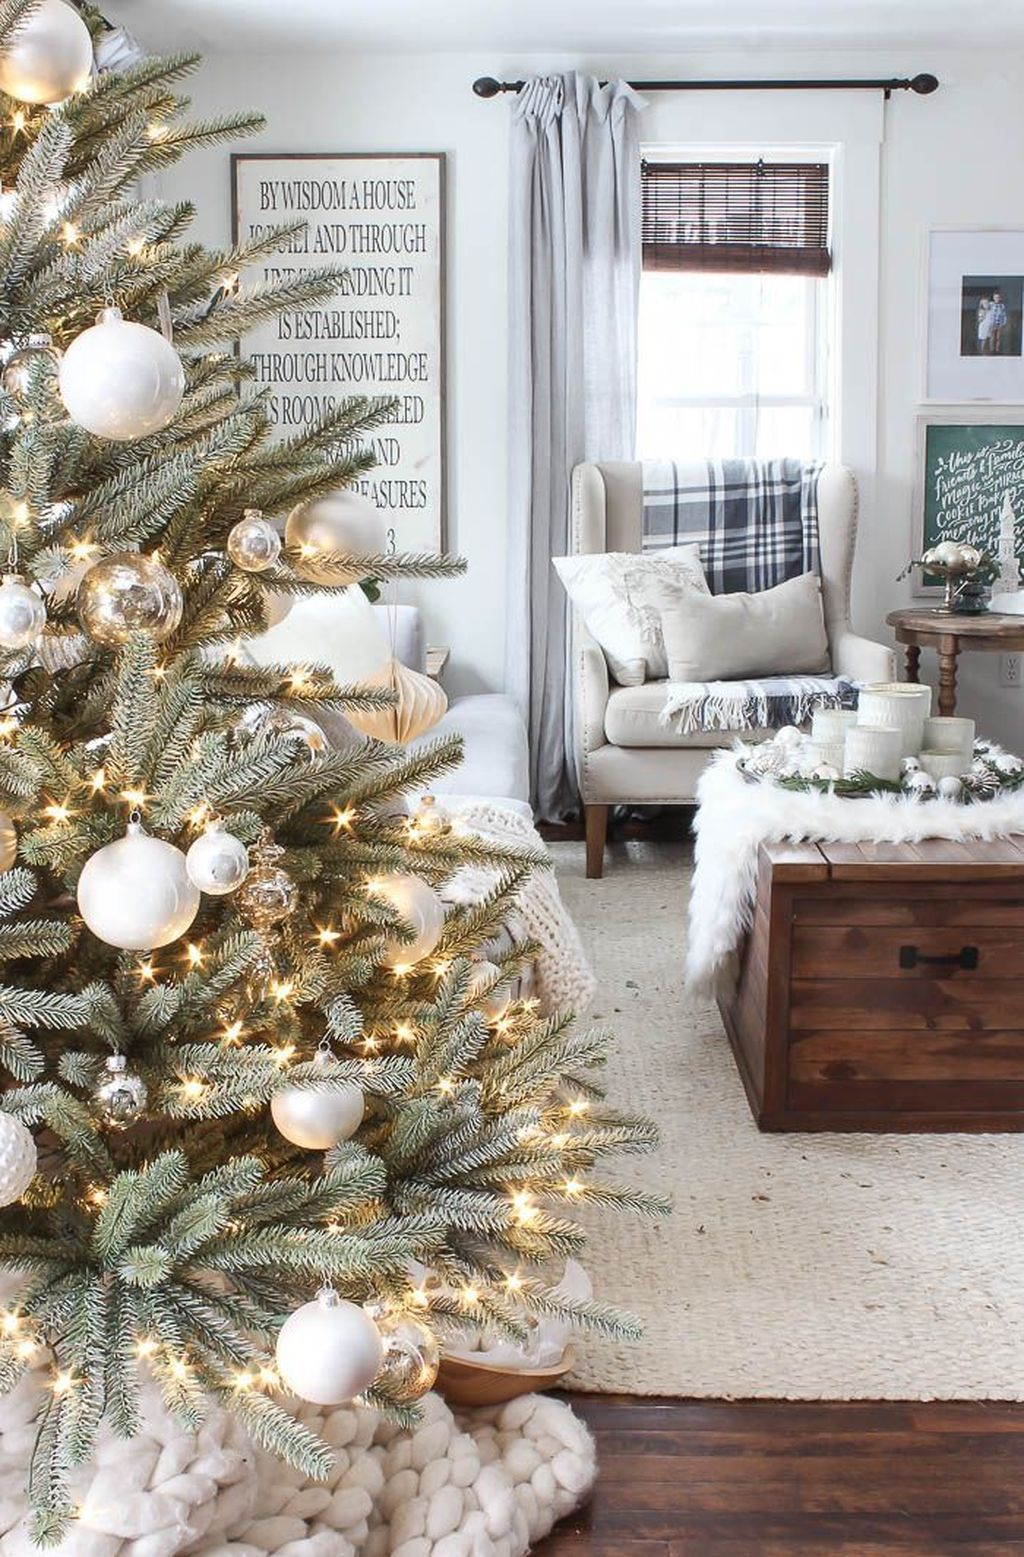 Gorgeous Winter Home Decor Ideas Which Makes You Cozy At Home #christmastreeideas